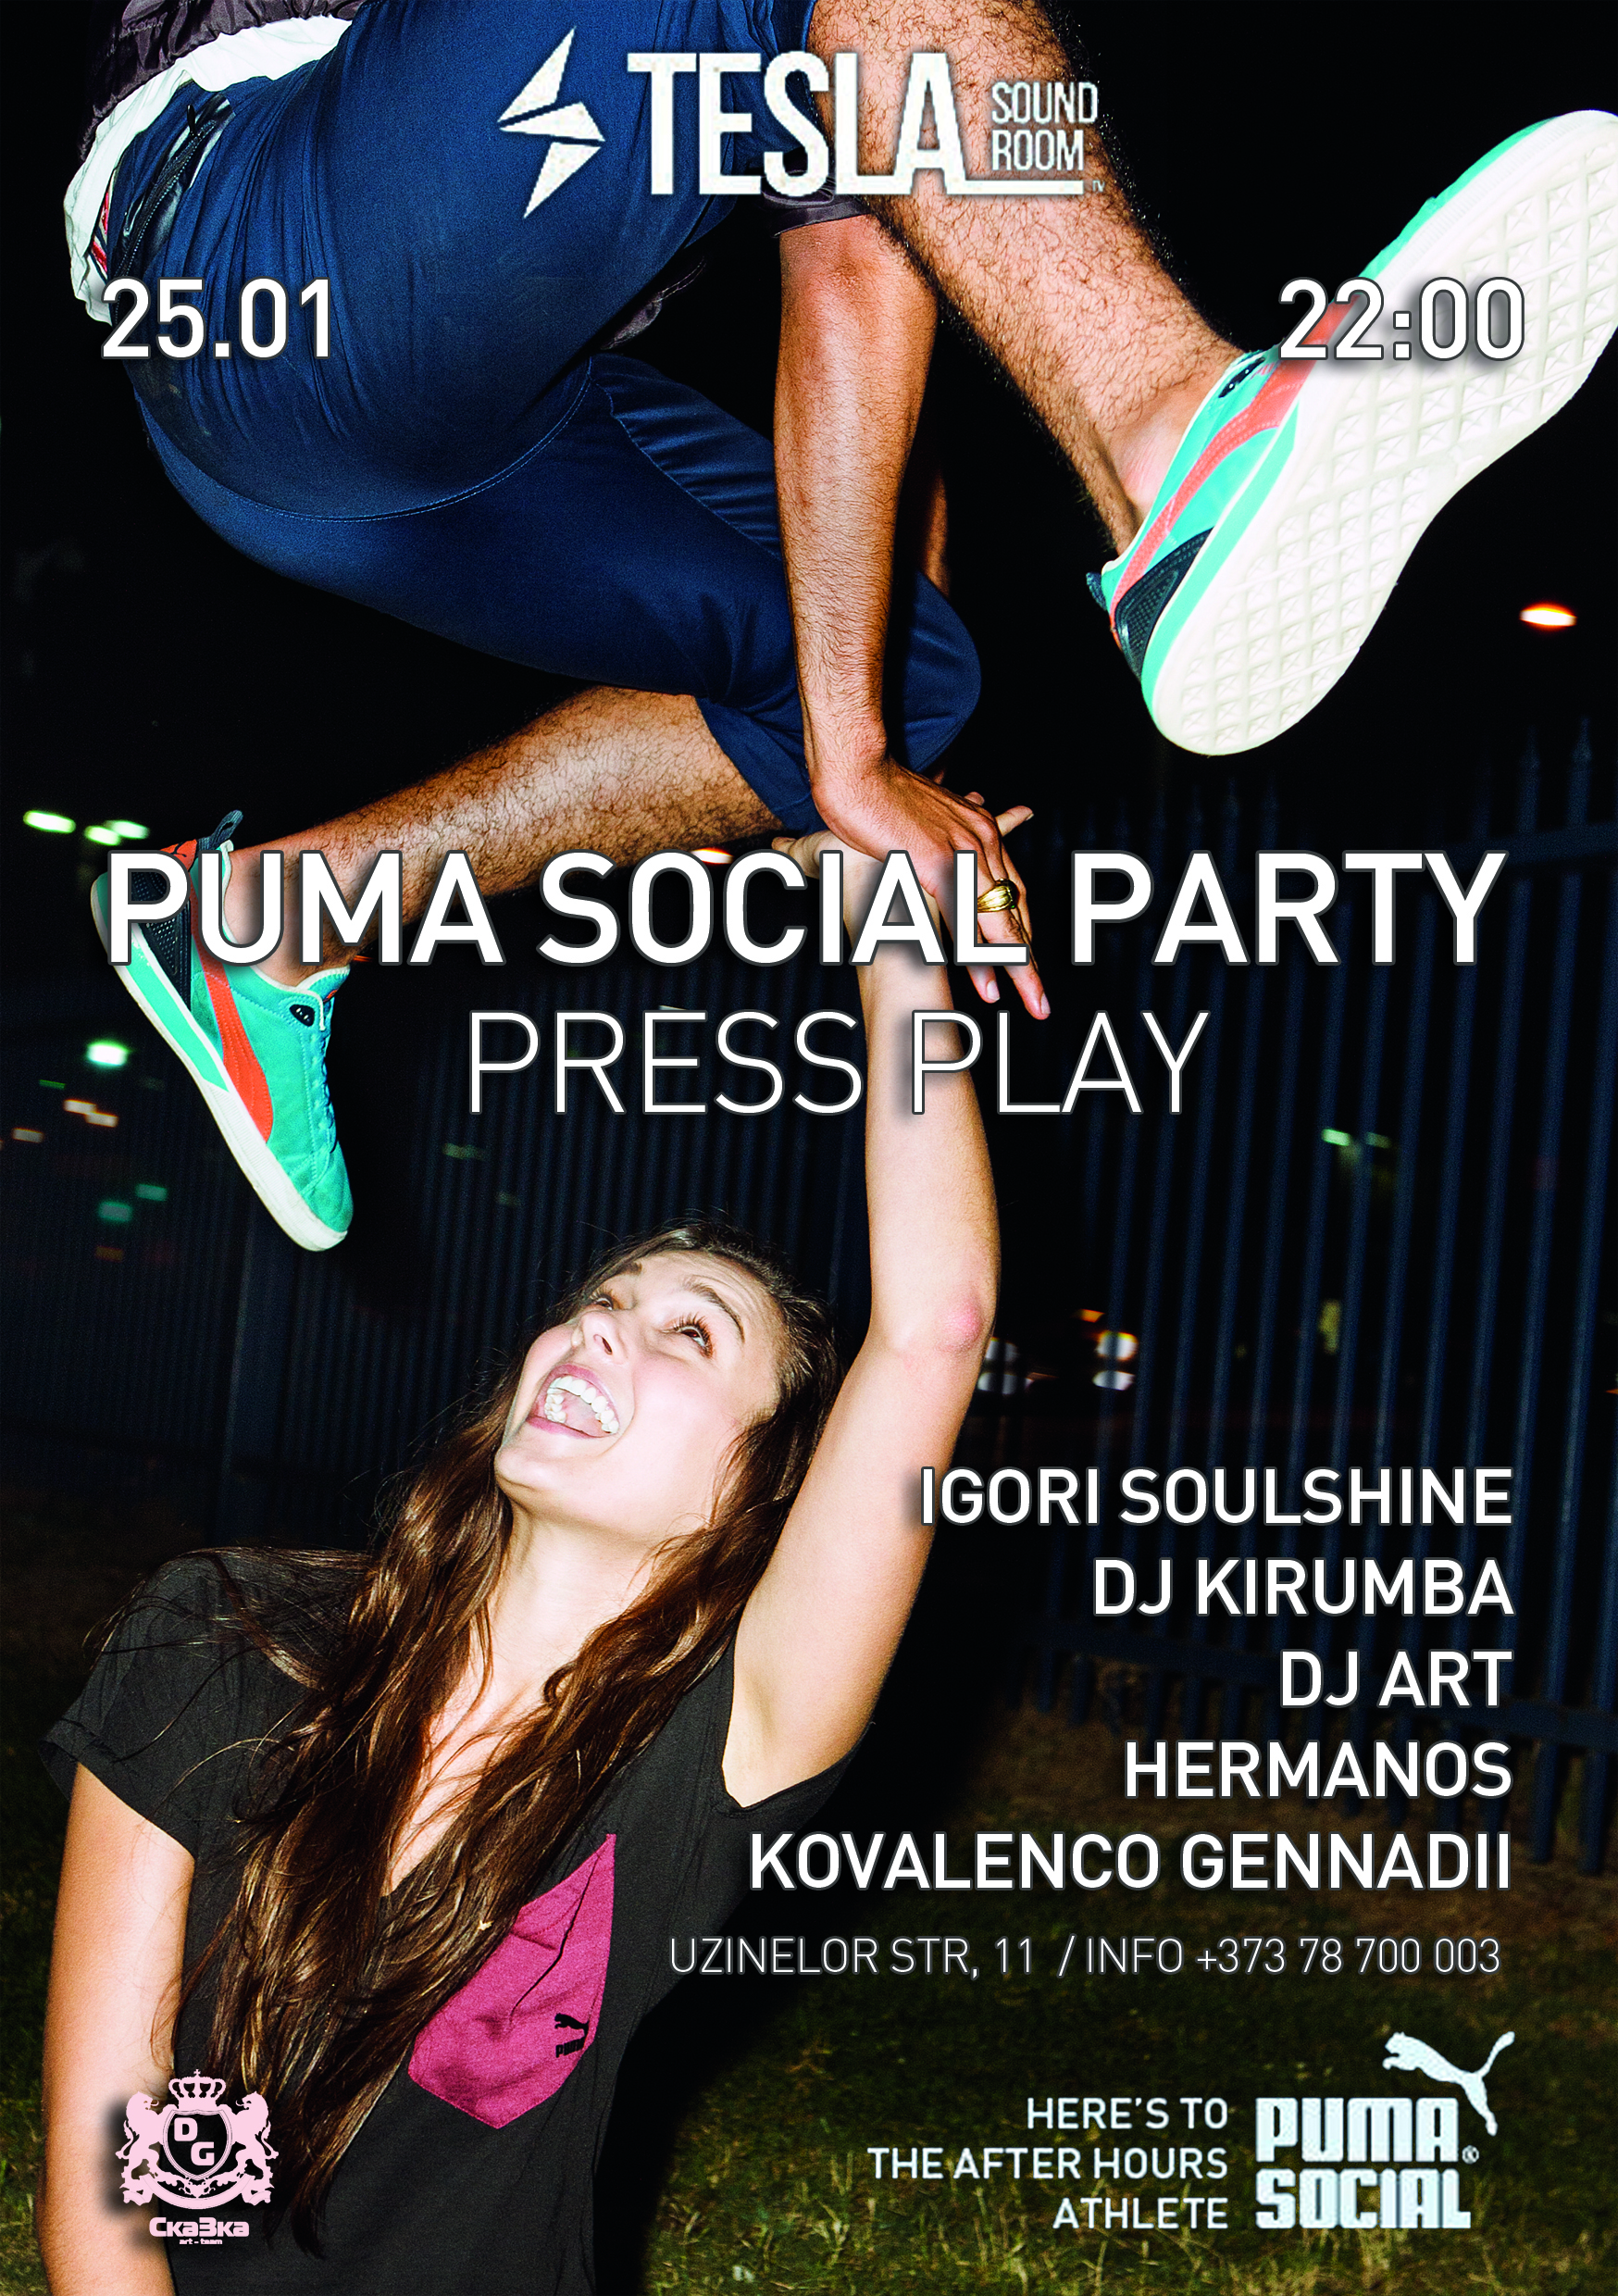 puma_social_party_press_play_1